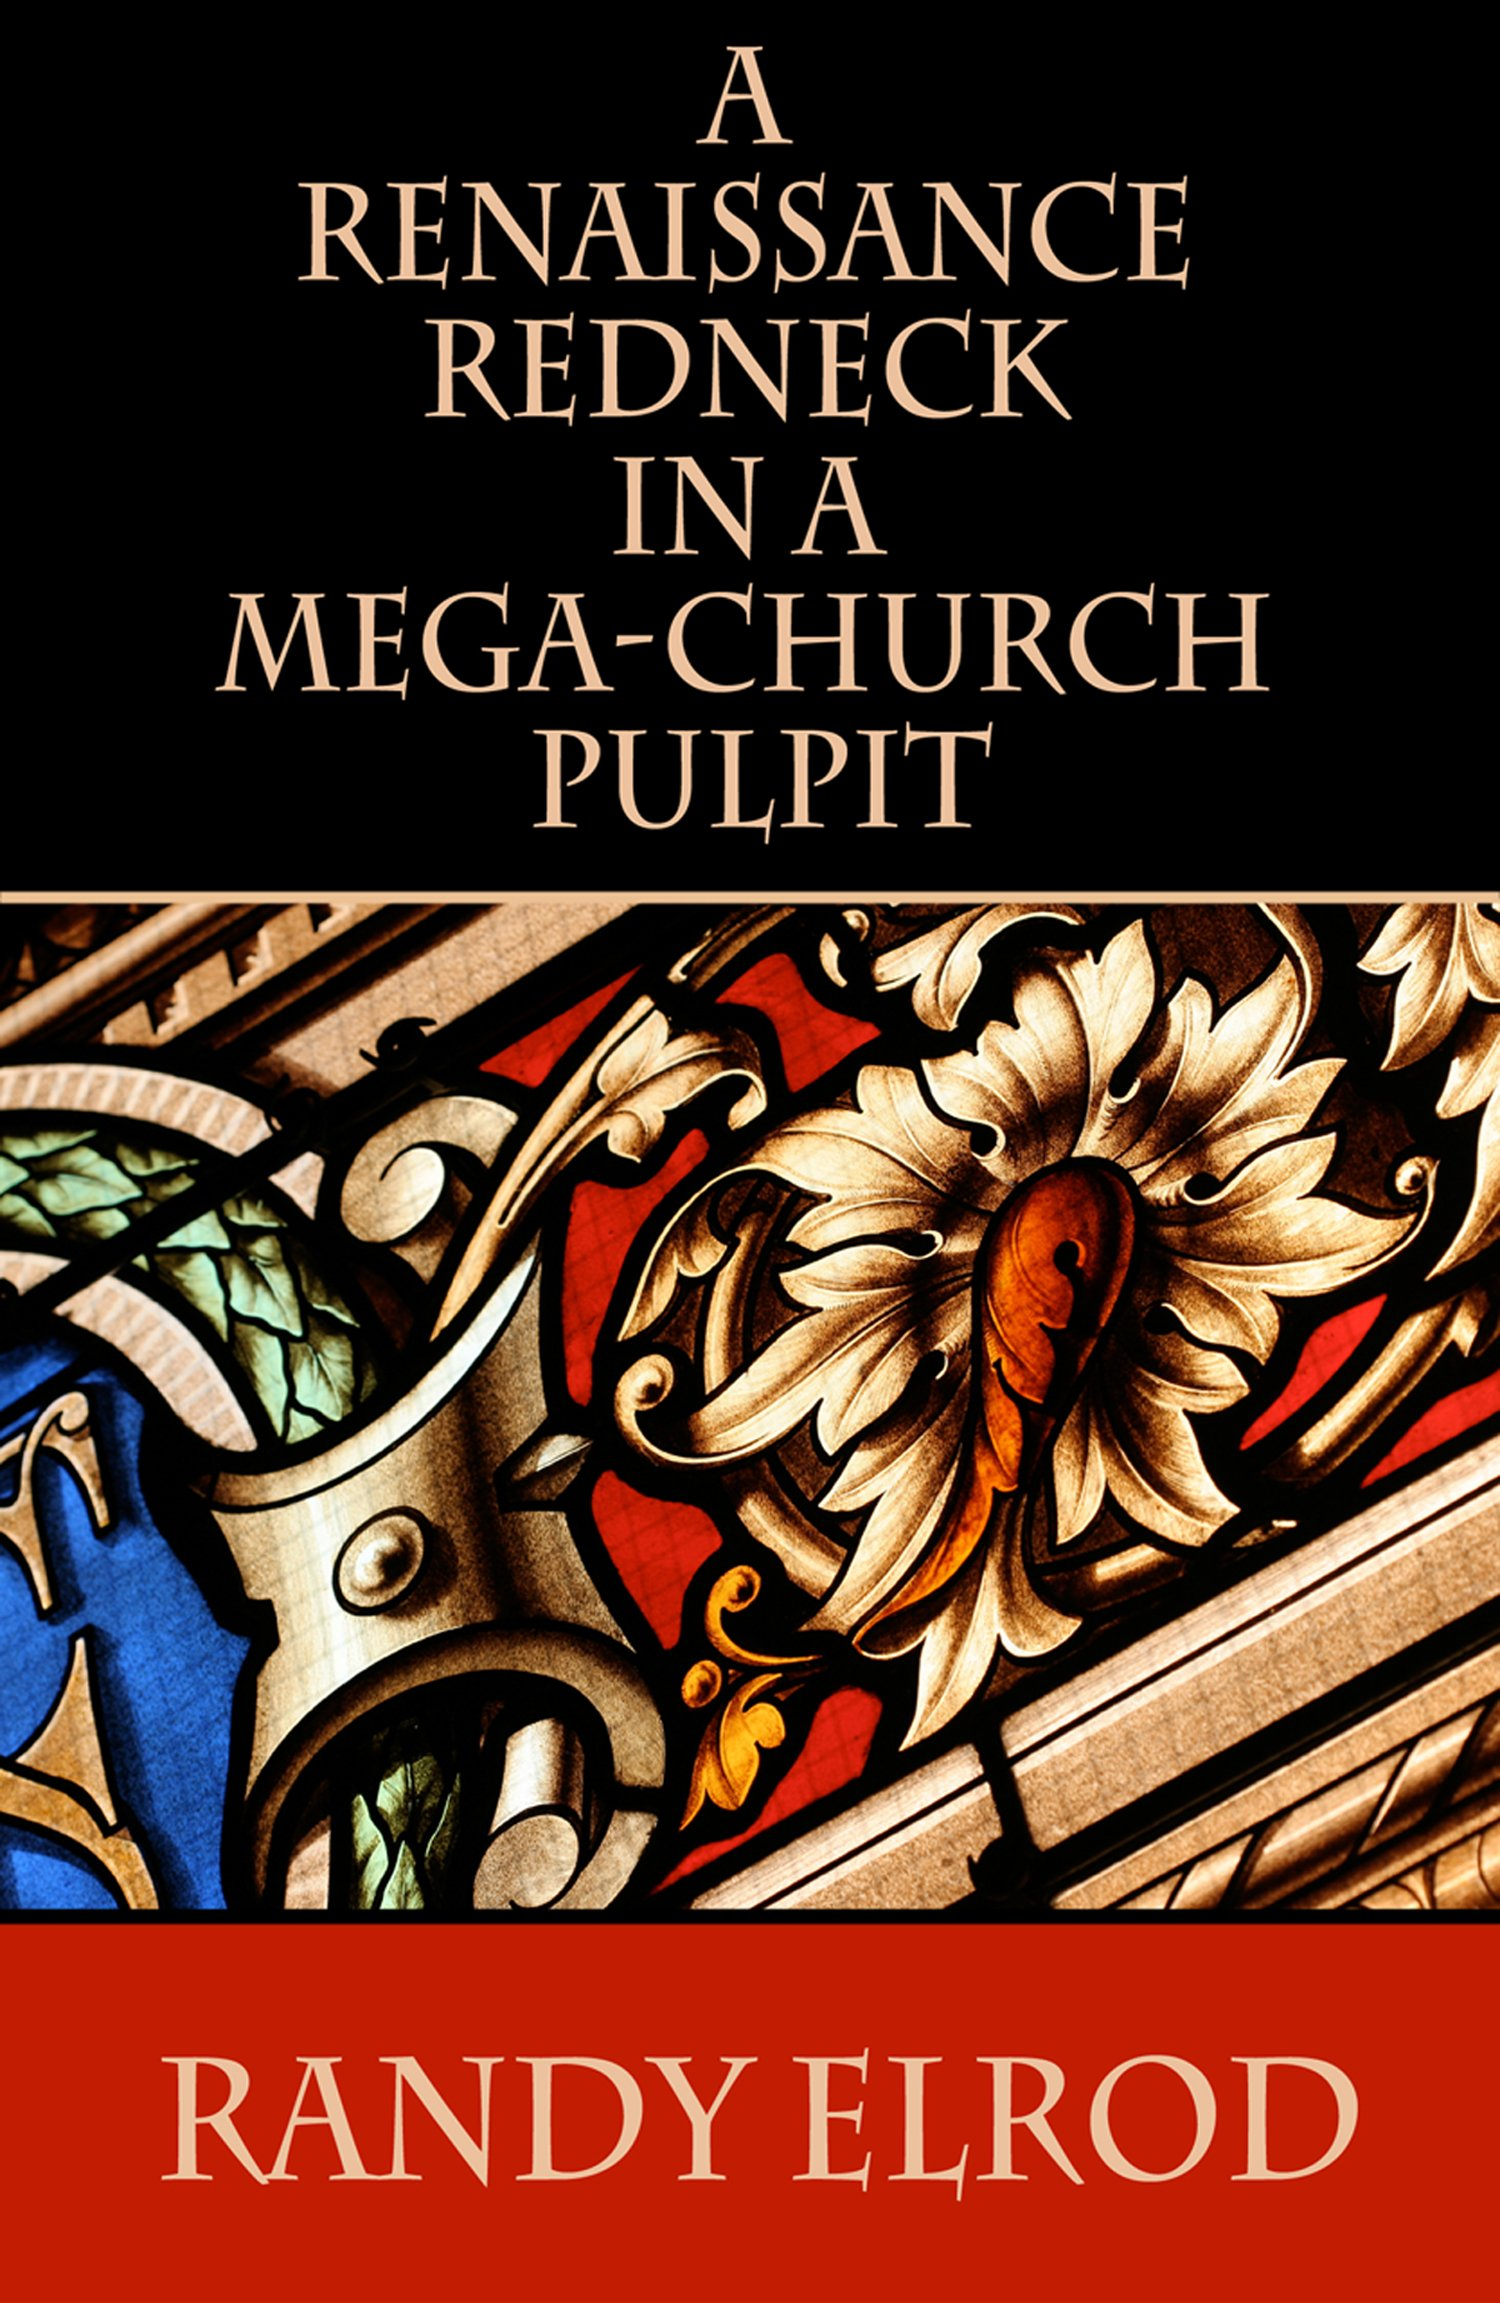 A Renaissance Redneck In A Mega-Church Pulpit pdf